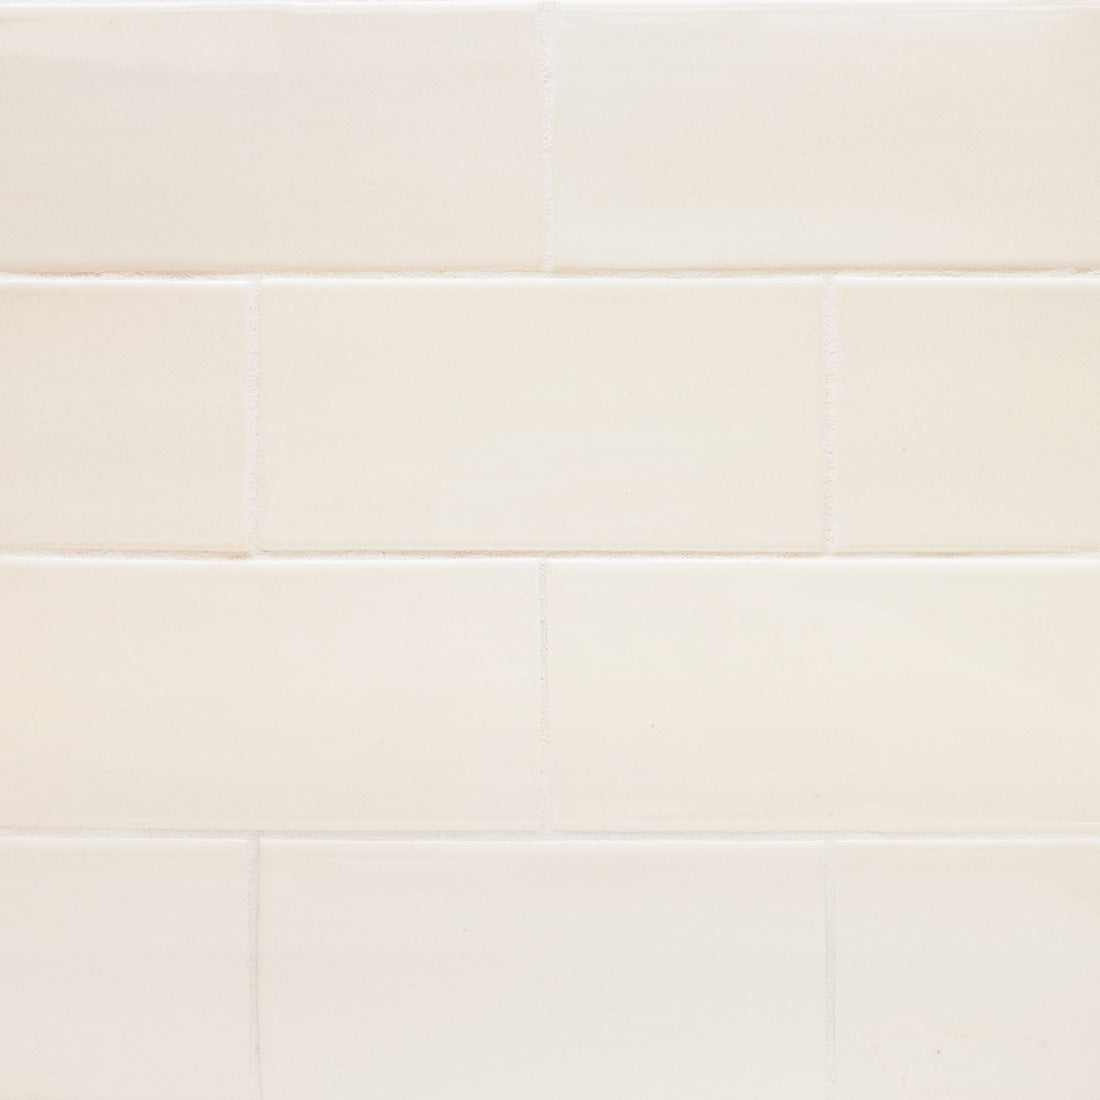 Header-110816 How to Choose the Perfect Subway Tile Color and Pattern All Bathrooms Kitchens Tile Education Tile Inspiration   Larsen-Peterson-Bathroom-Medium-1 How to Choose the Perfect Subway Tile Color and Pattern All Bathrooms Kitchens Tile Education Tile Inspiration   SubwayTileSheets How to Choose the Perfect Subway Tile Color and Pattern All Bathrooms Kitchens Tile Education Tile Inspiration   3x6HistoricWhiteSubwayTile How to Choose the Perfect Subway Tile Color and Pattern All Bathrooms Kitchens Tile Education Tile Inspiration